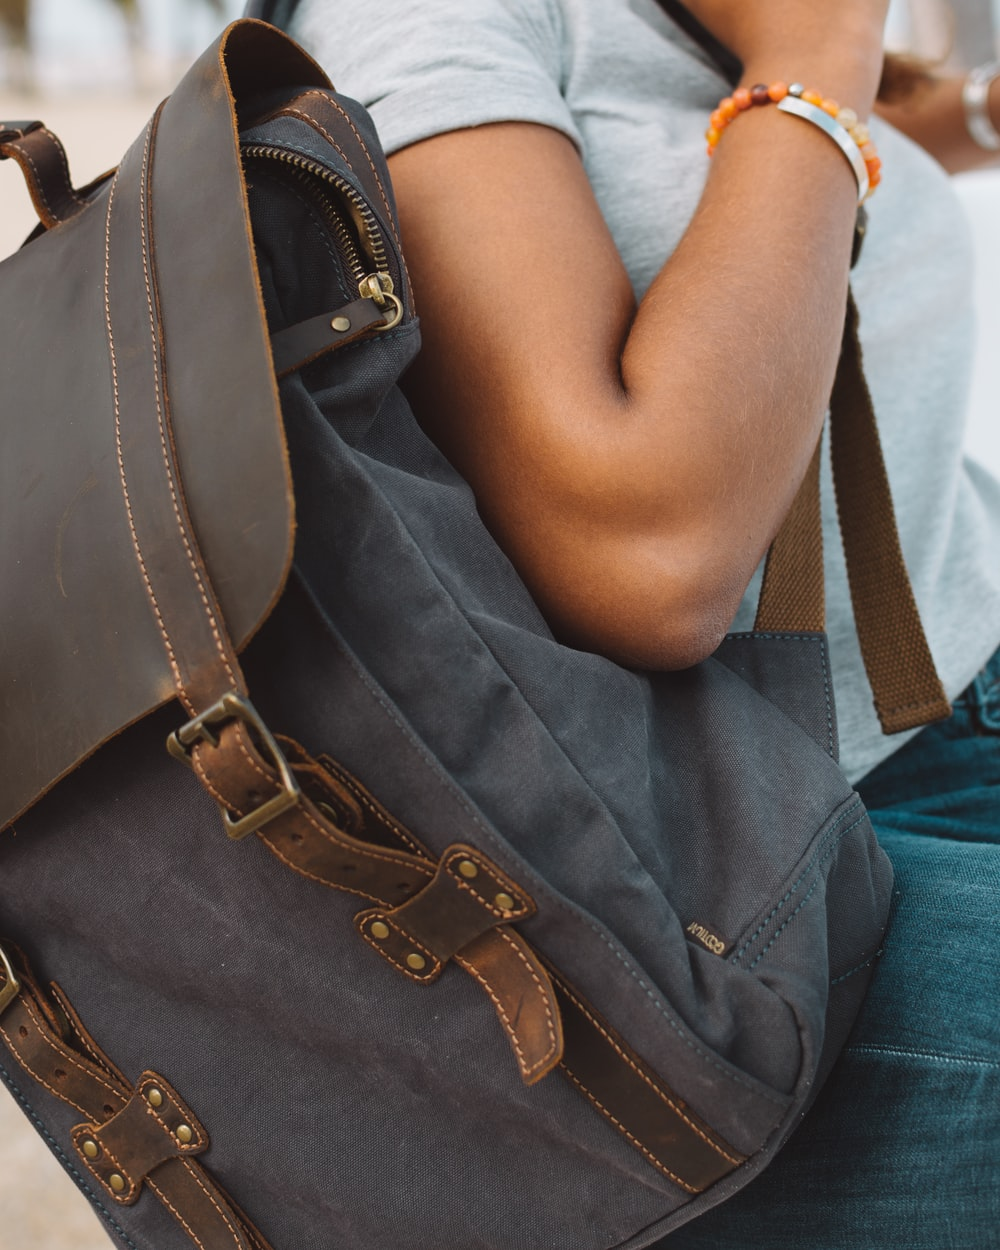 woman wearing gray shirt carrying brown and gray knapsack backpack